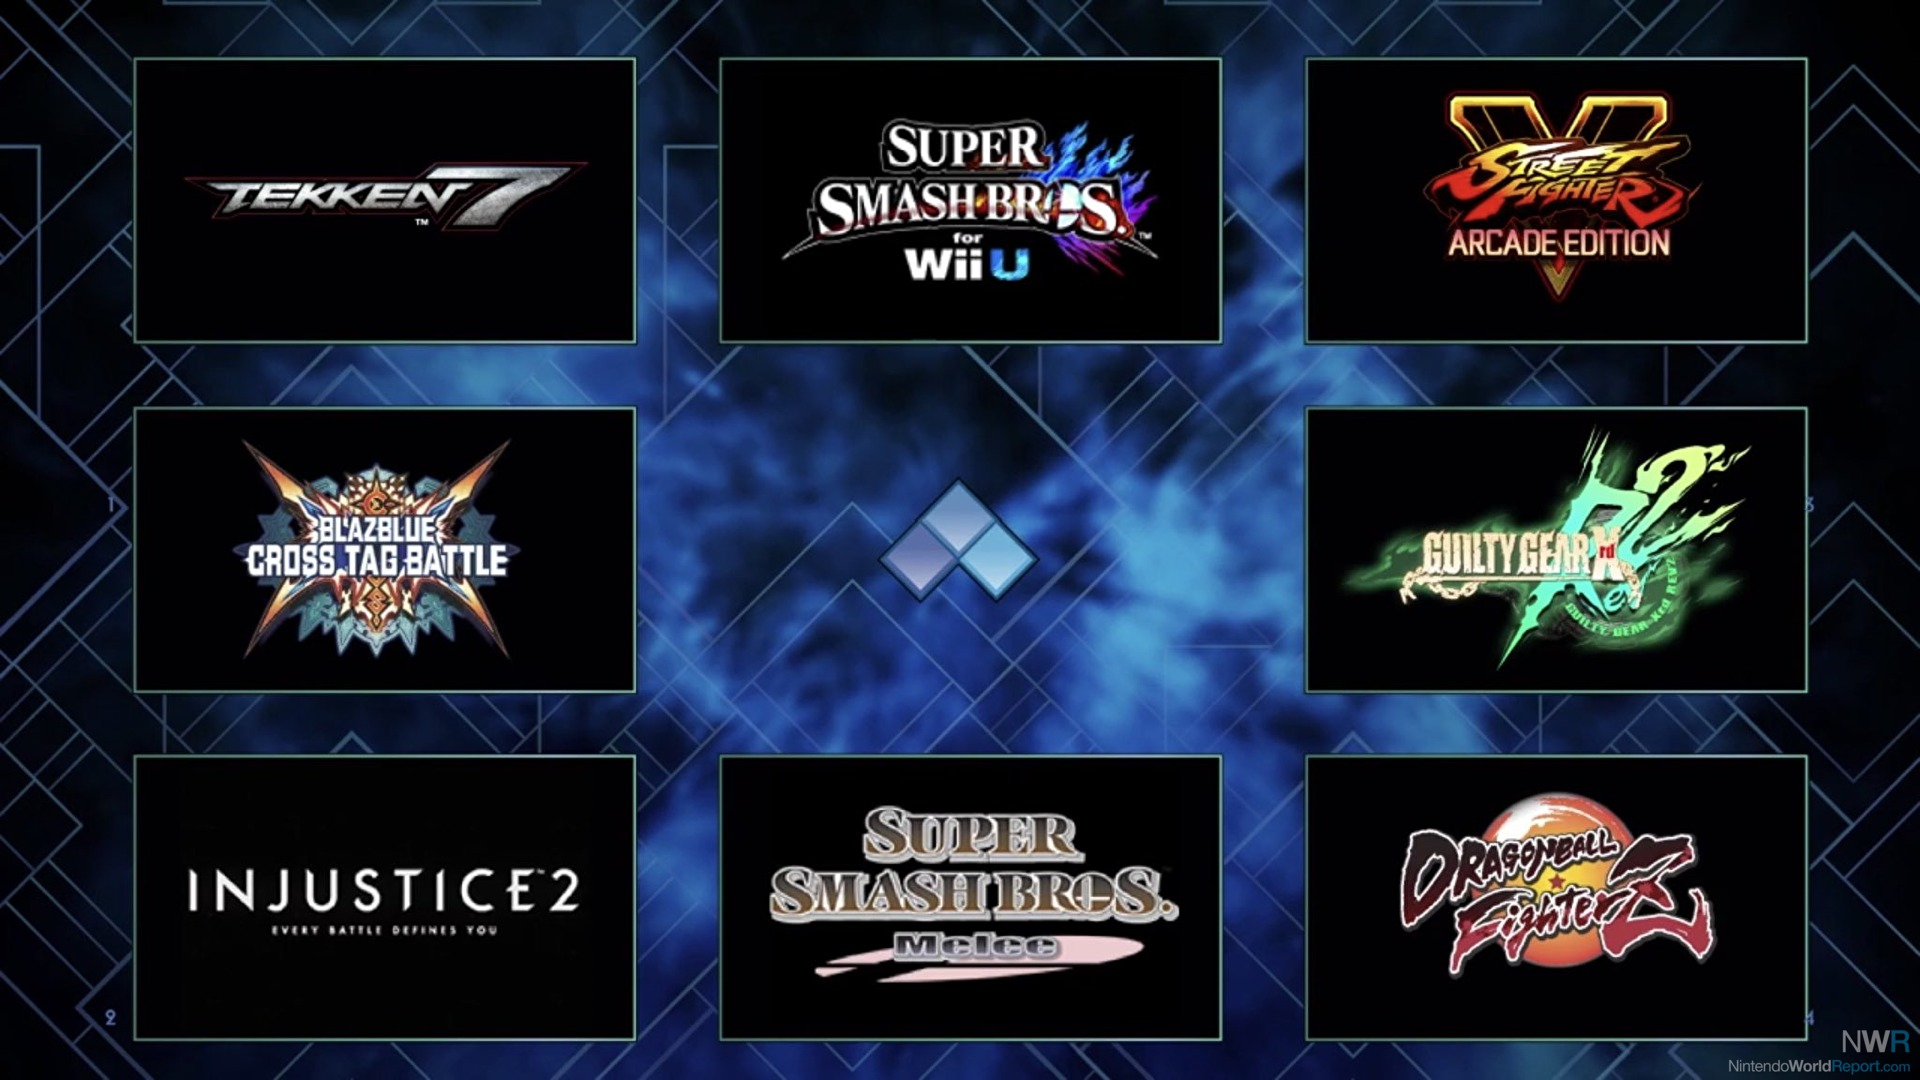 Marvel vs. Capcom: Infinite Gets Snubbed From EVO 2018 Games Lineup